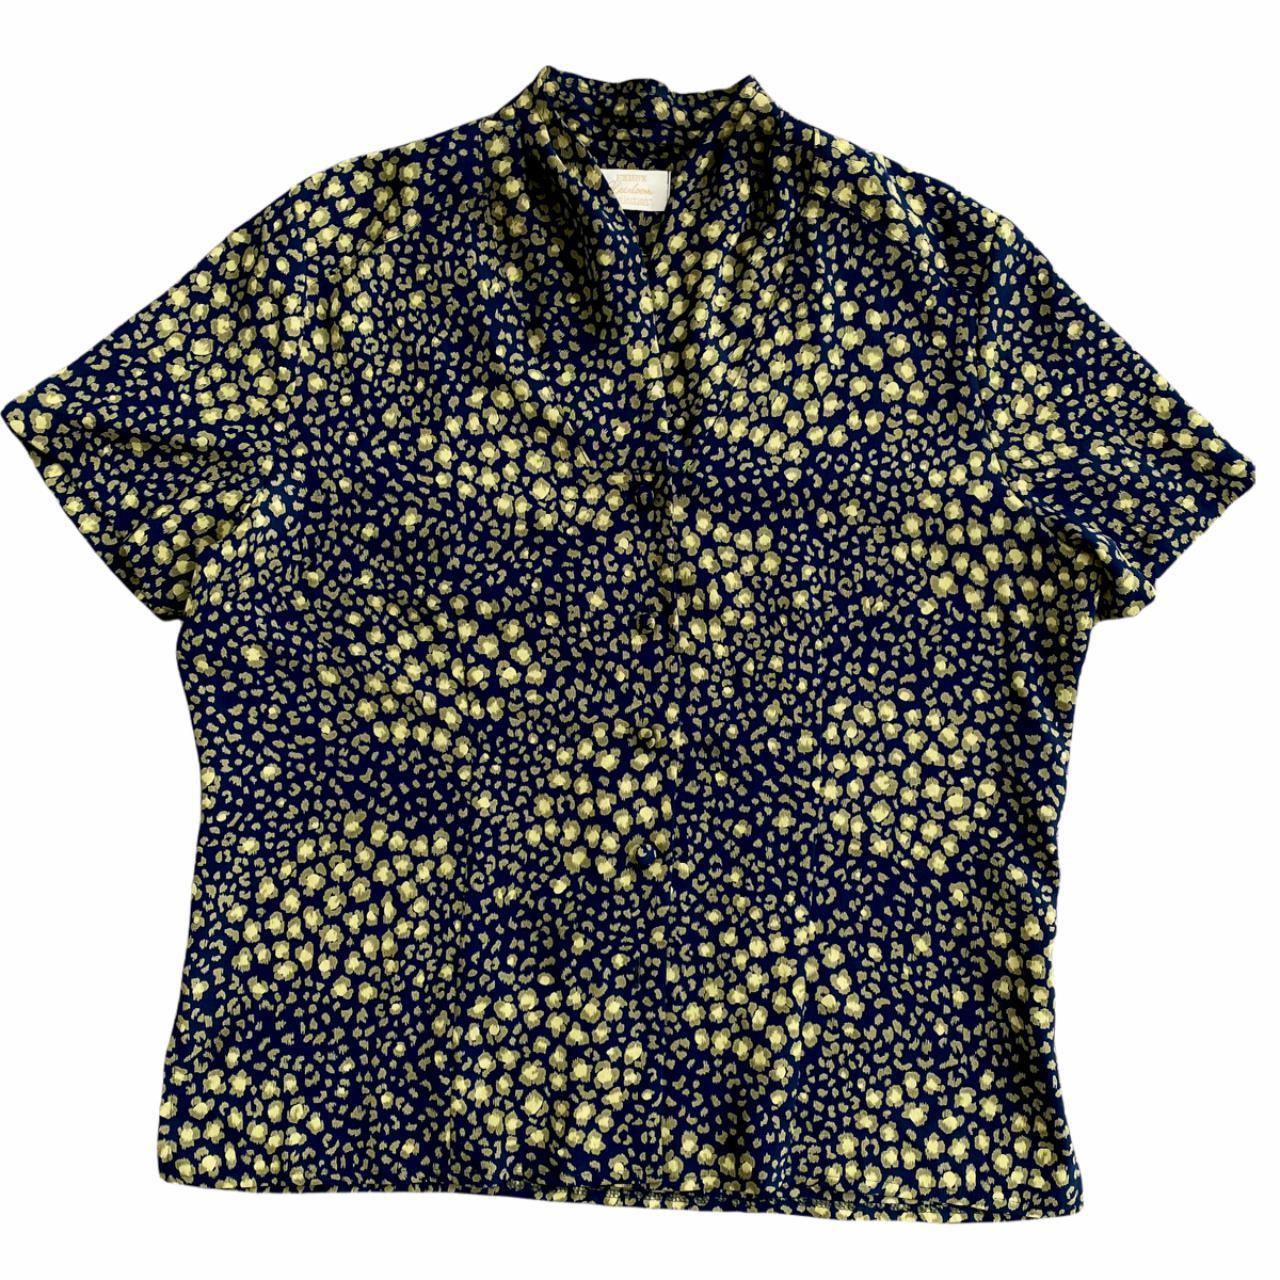 Product Image 1 - Vintage green printed polyester blouse